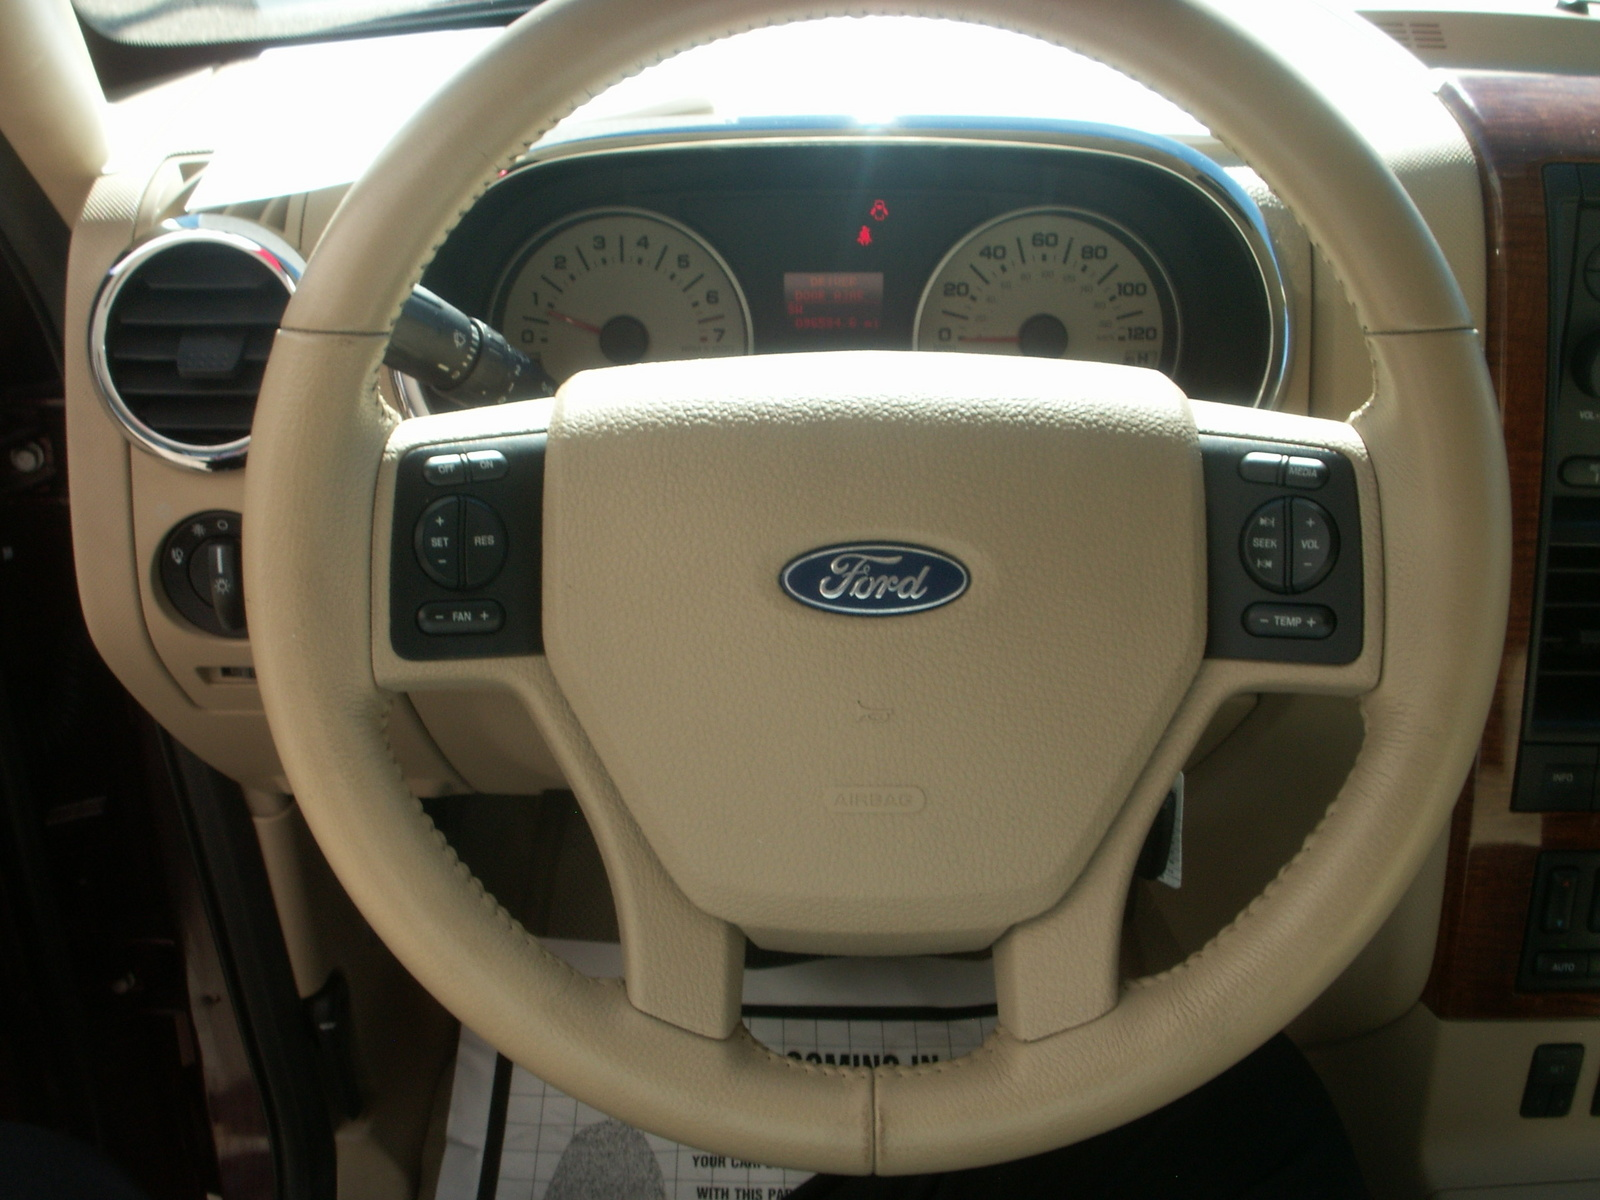 2006 ford explorer interior pictures cargurus